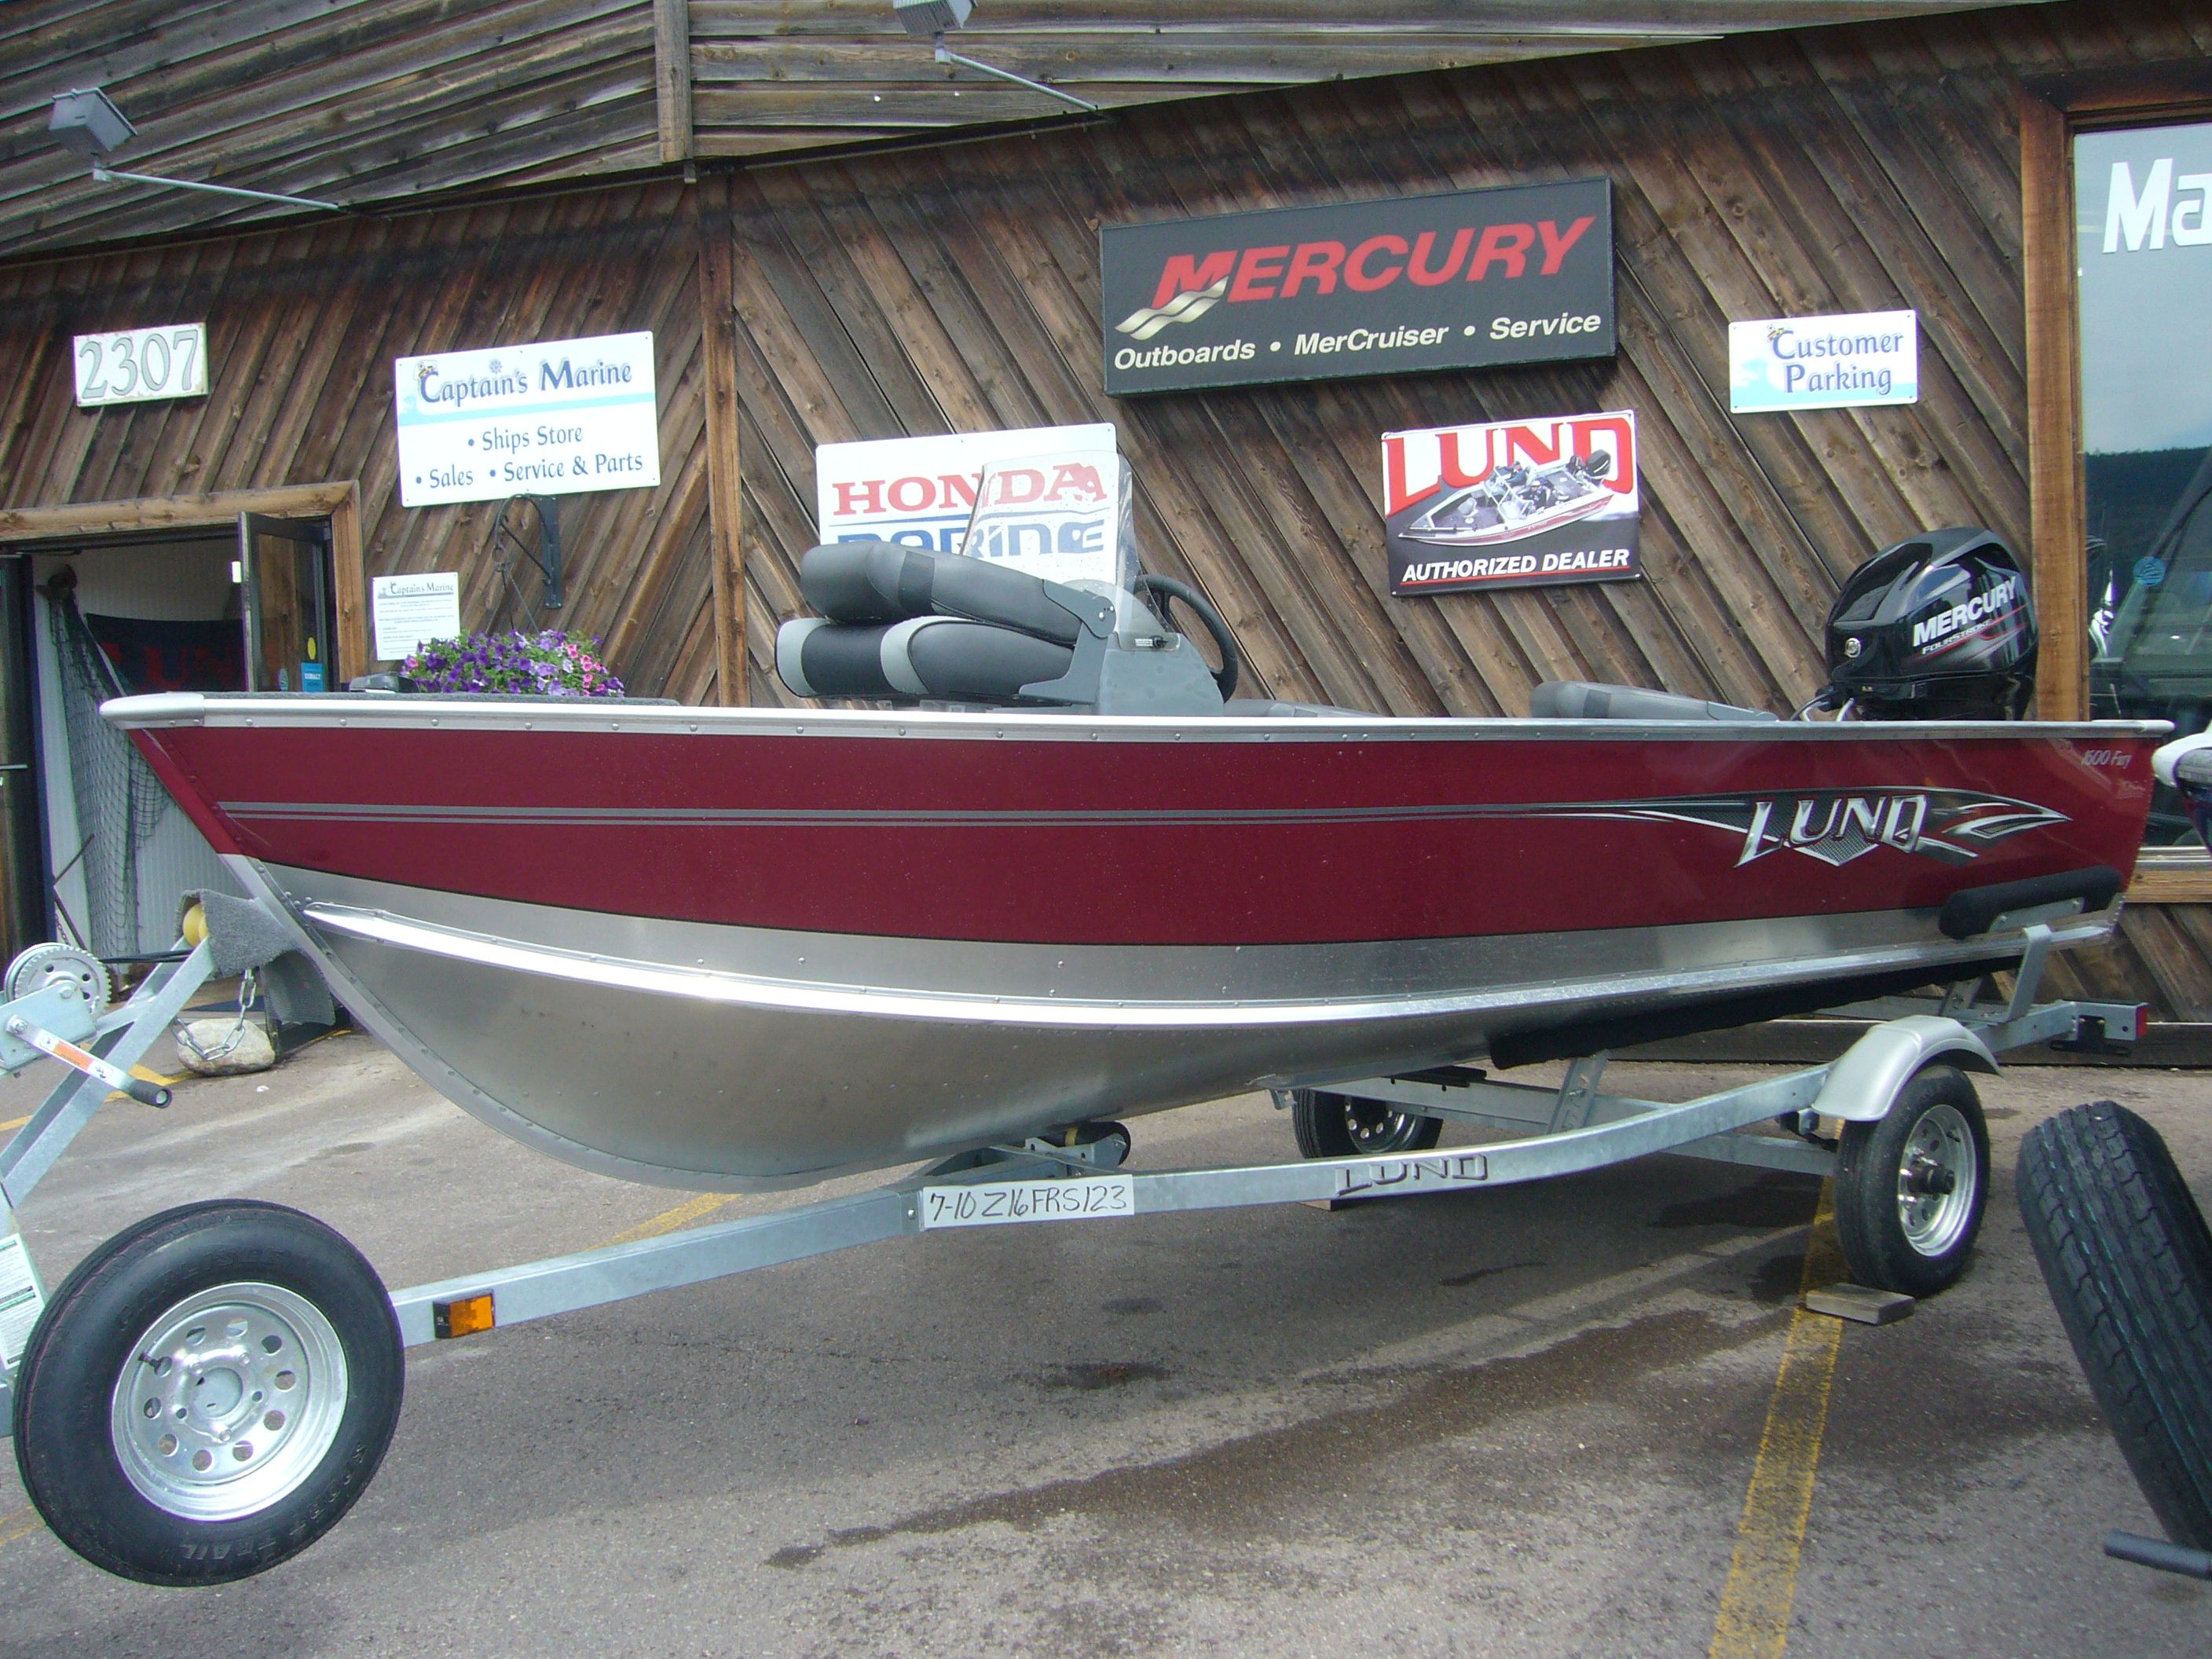 b0a643e32787989844ffc8f4480545f3 47 best lund boats images on pinterest boating, power boats and  at alyssarenee.co